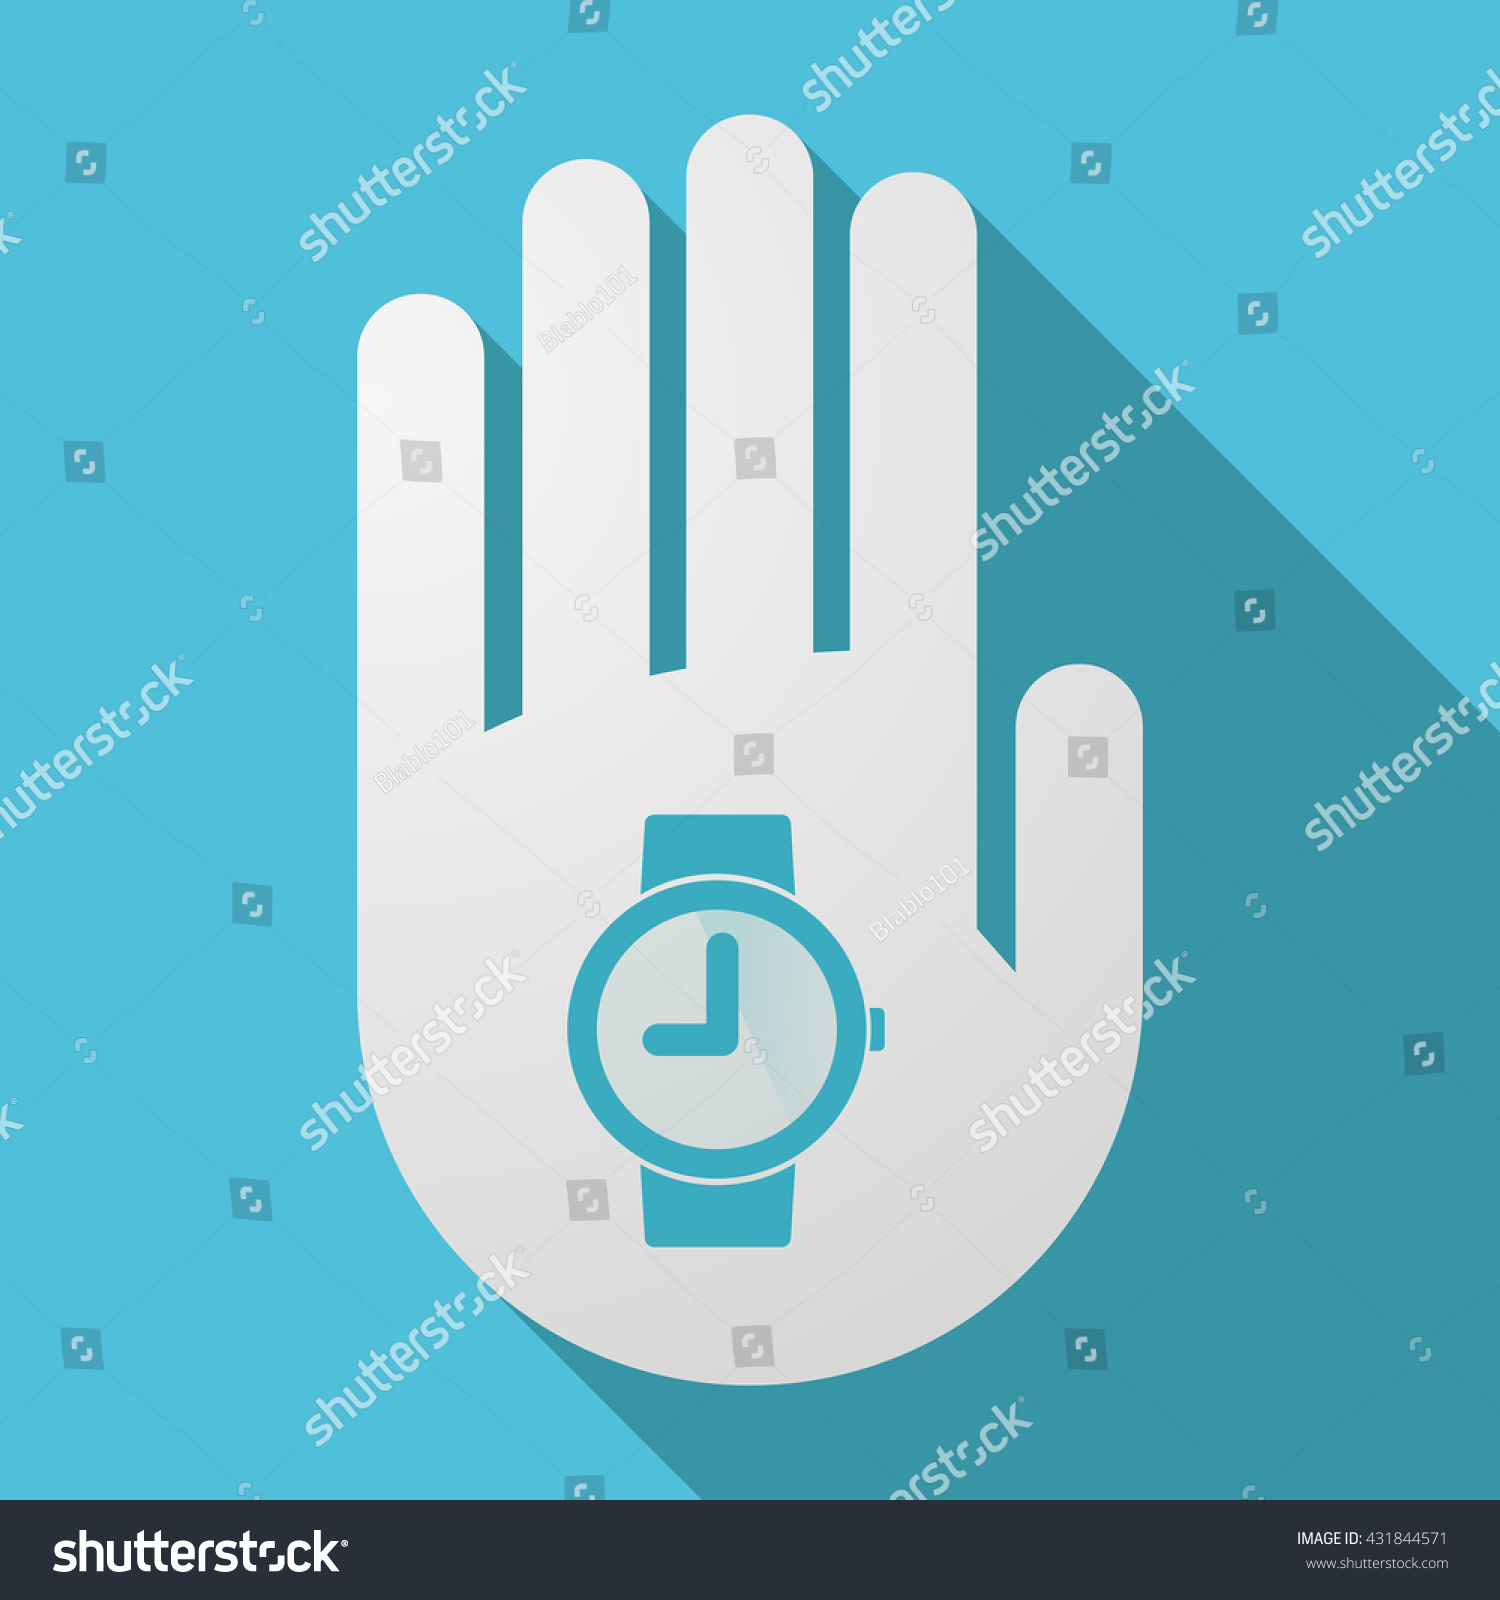 Illustration Long Shadow Hand Wrist Watch Stock Vector Royalty Free Circuit Boards With Clock Hands Image Of A